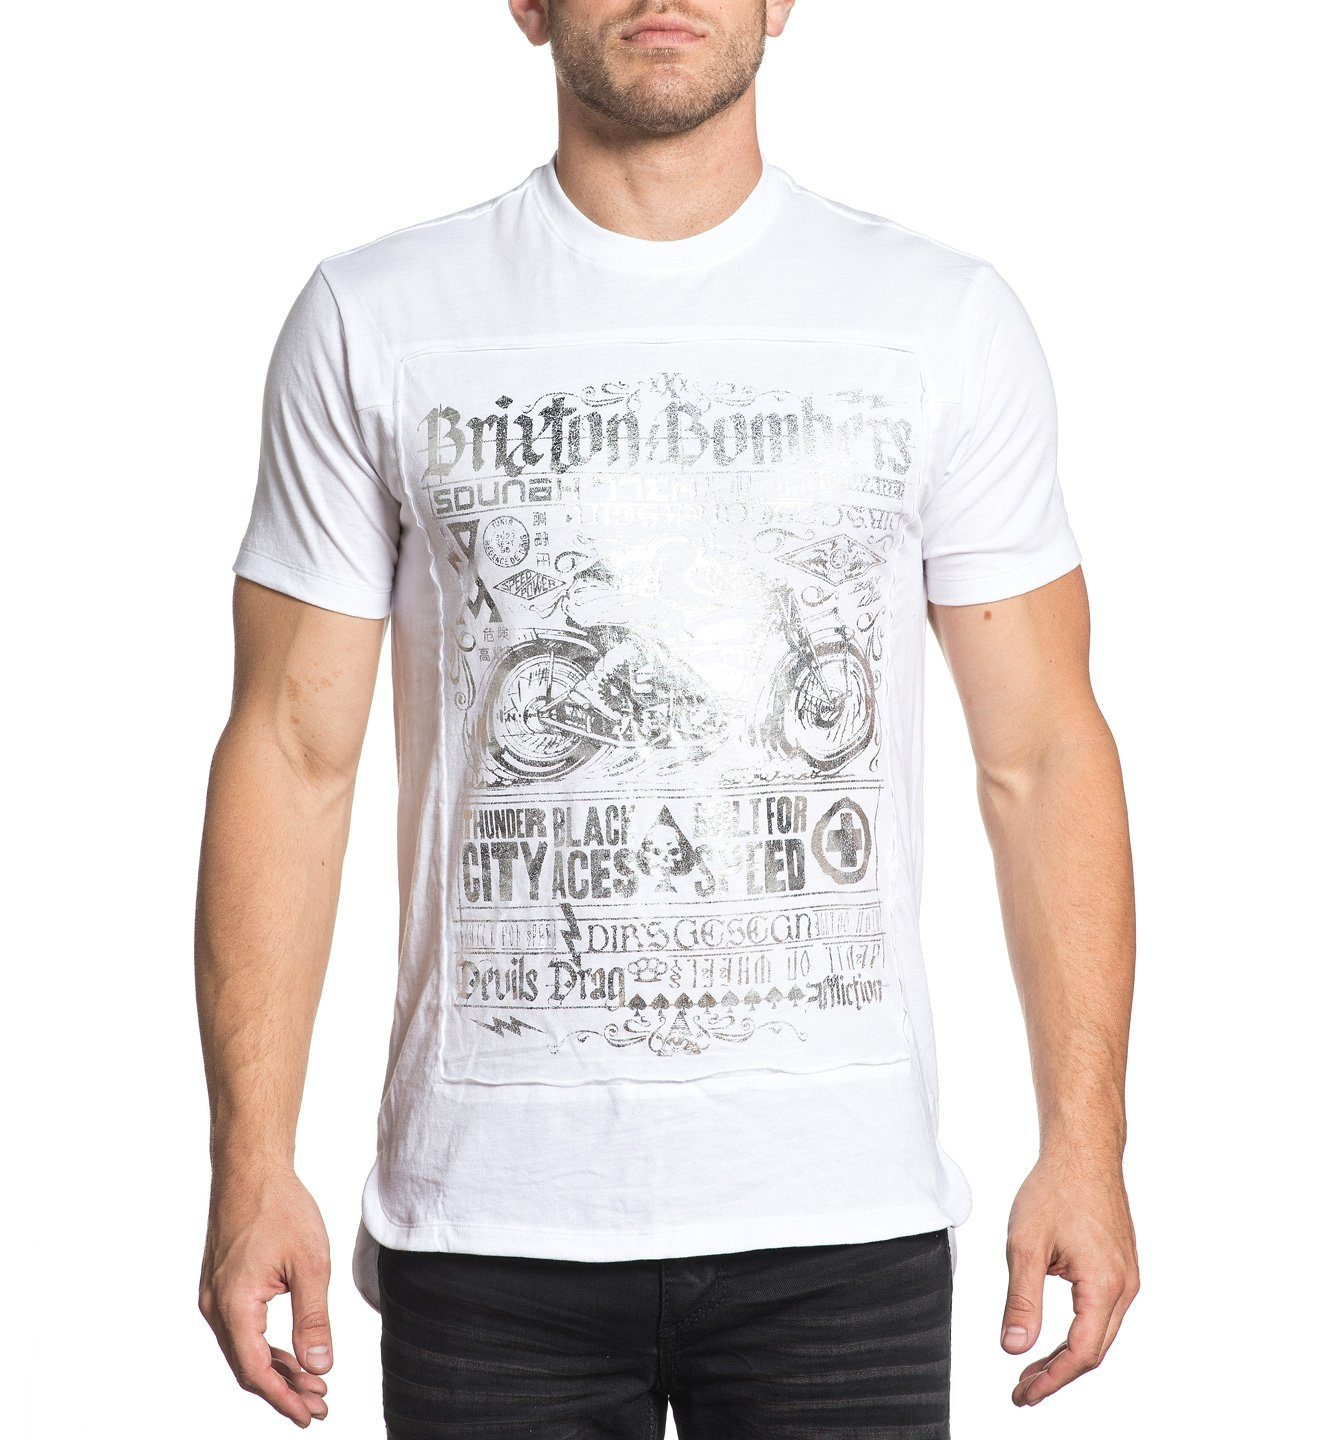 Mens Short Sleeve Tees - Brixton Bombers